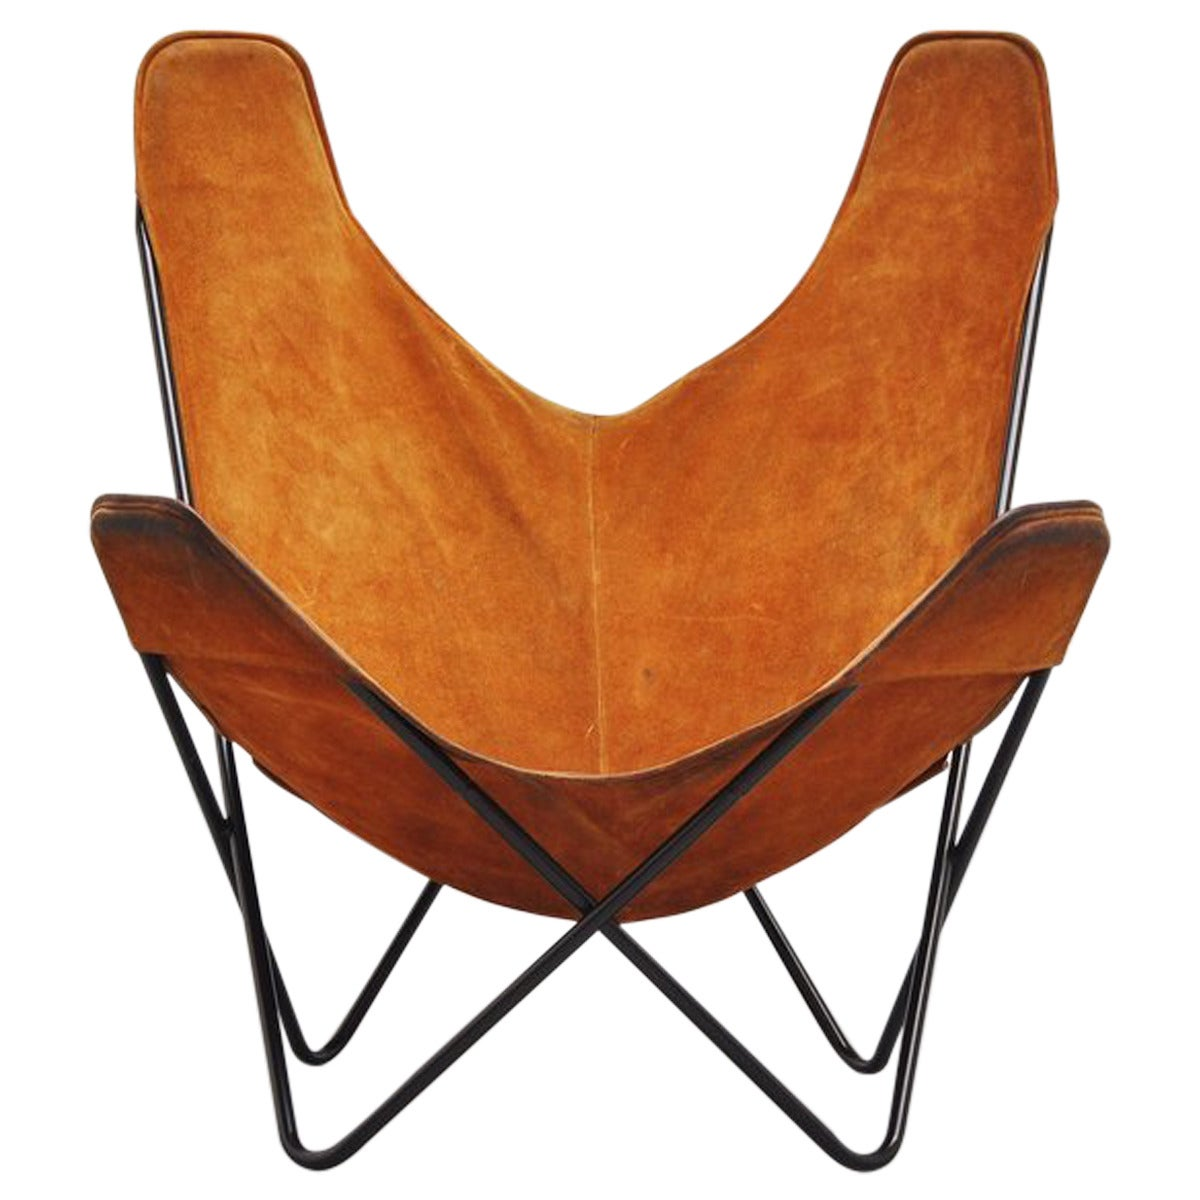 Butterfly Chair Knoll Butterfly Chair By Jorge Hardoy Ferrari For Knoll 1970